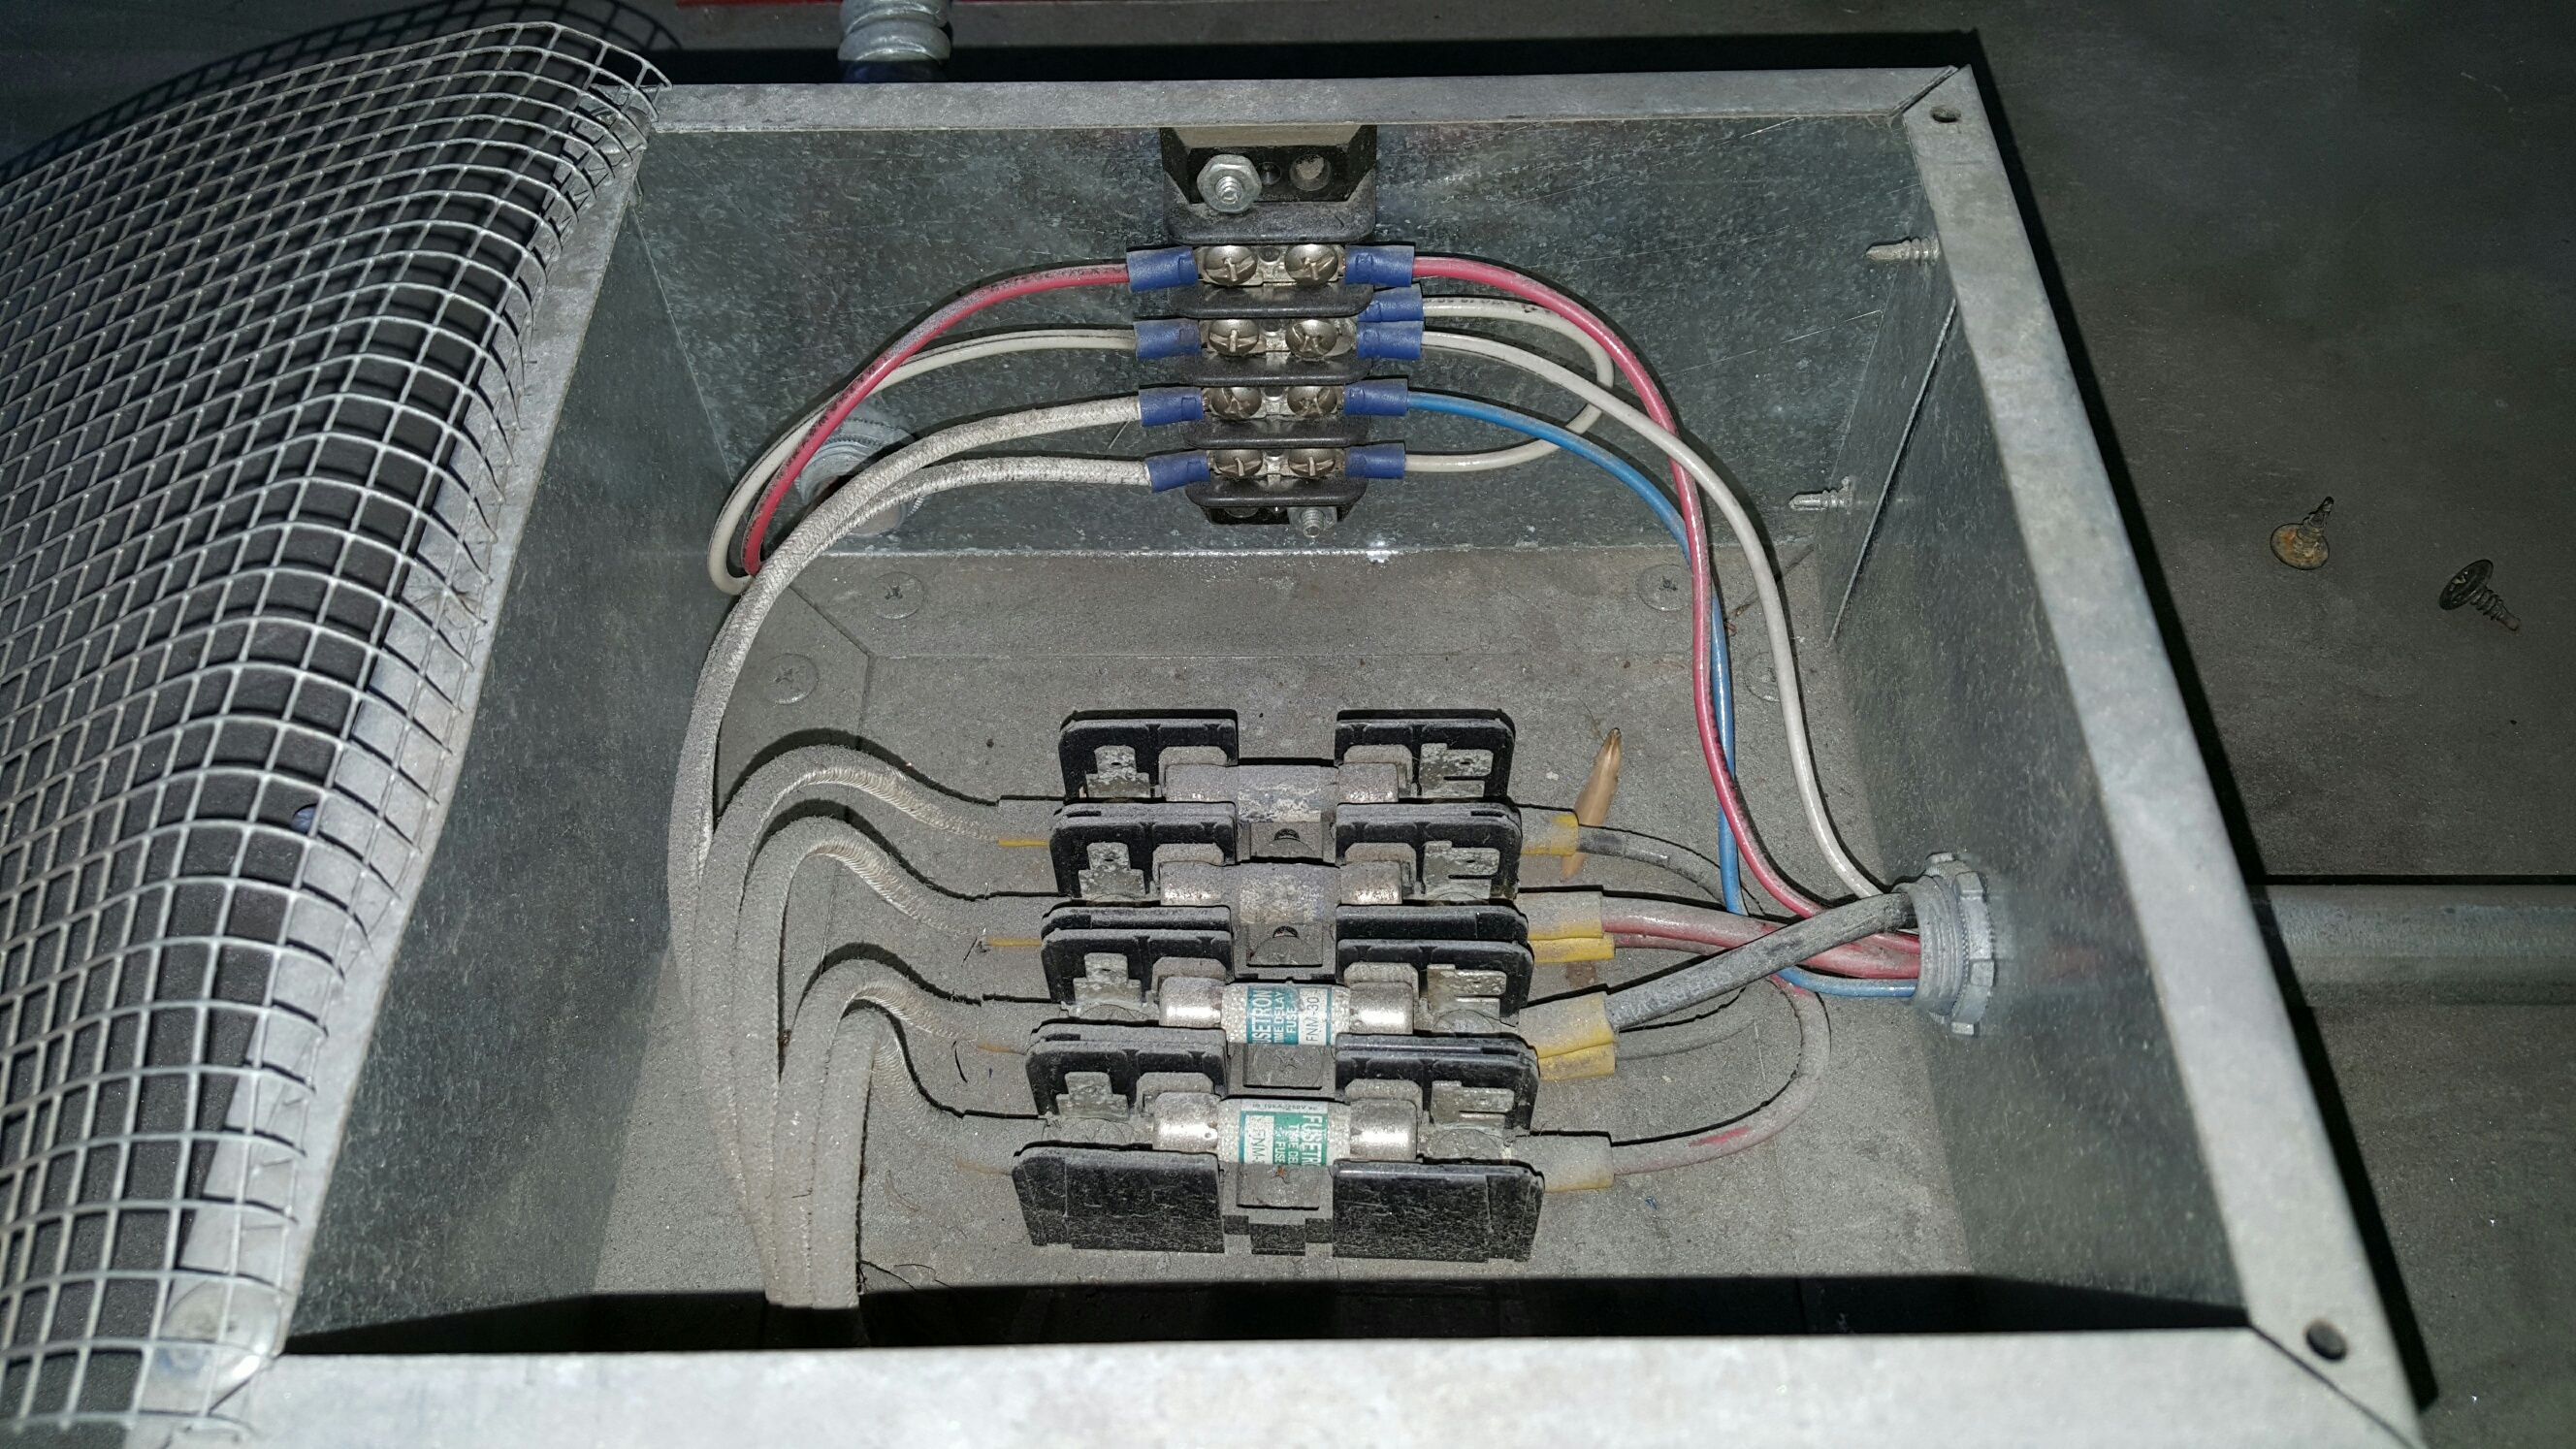 Wiring Pid And Controller To Ssr Powder365 Forums Or This How Wire An Auber For Electric Element Control Inline Fuses Heater Elements Also Light Fan